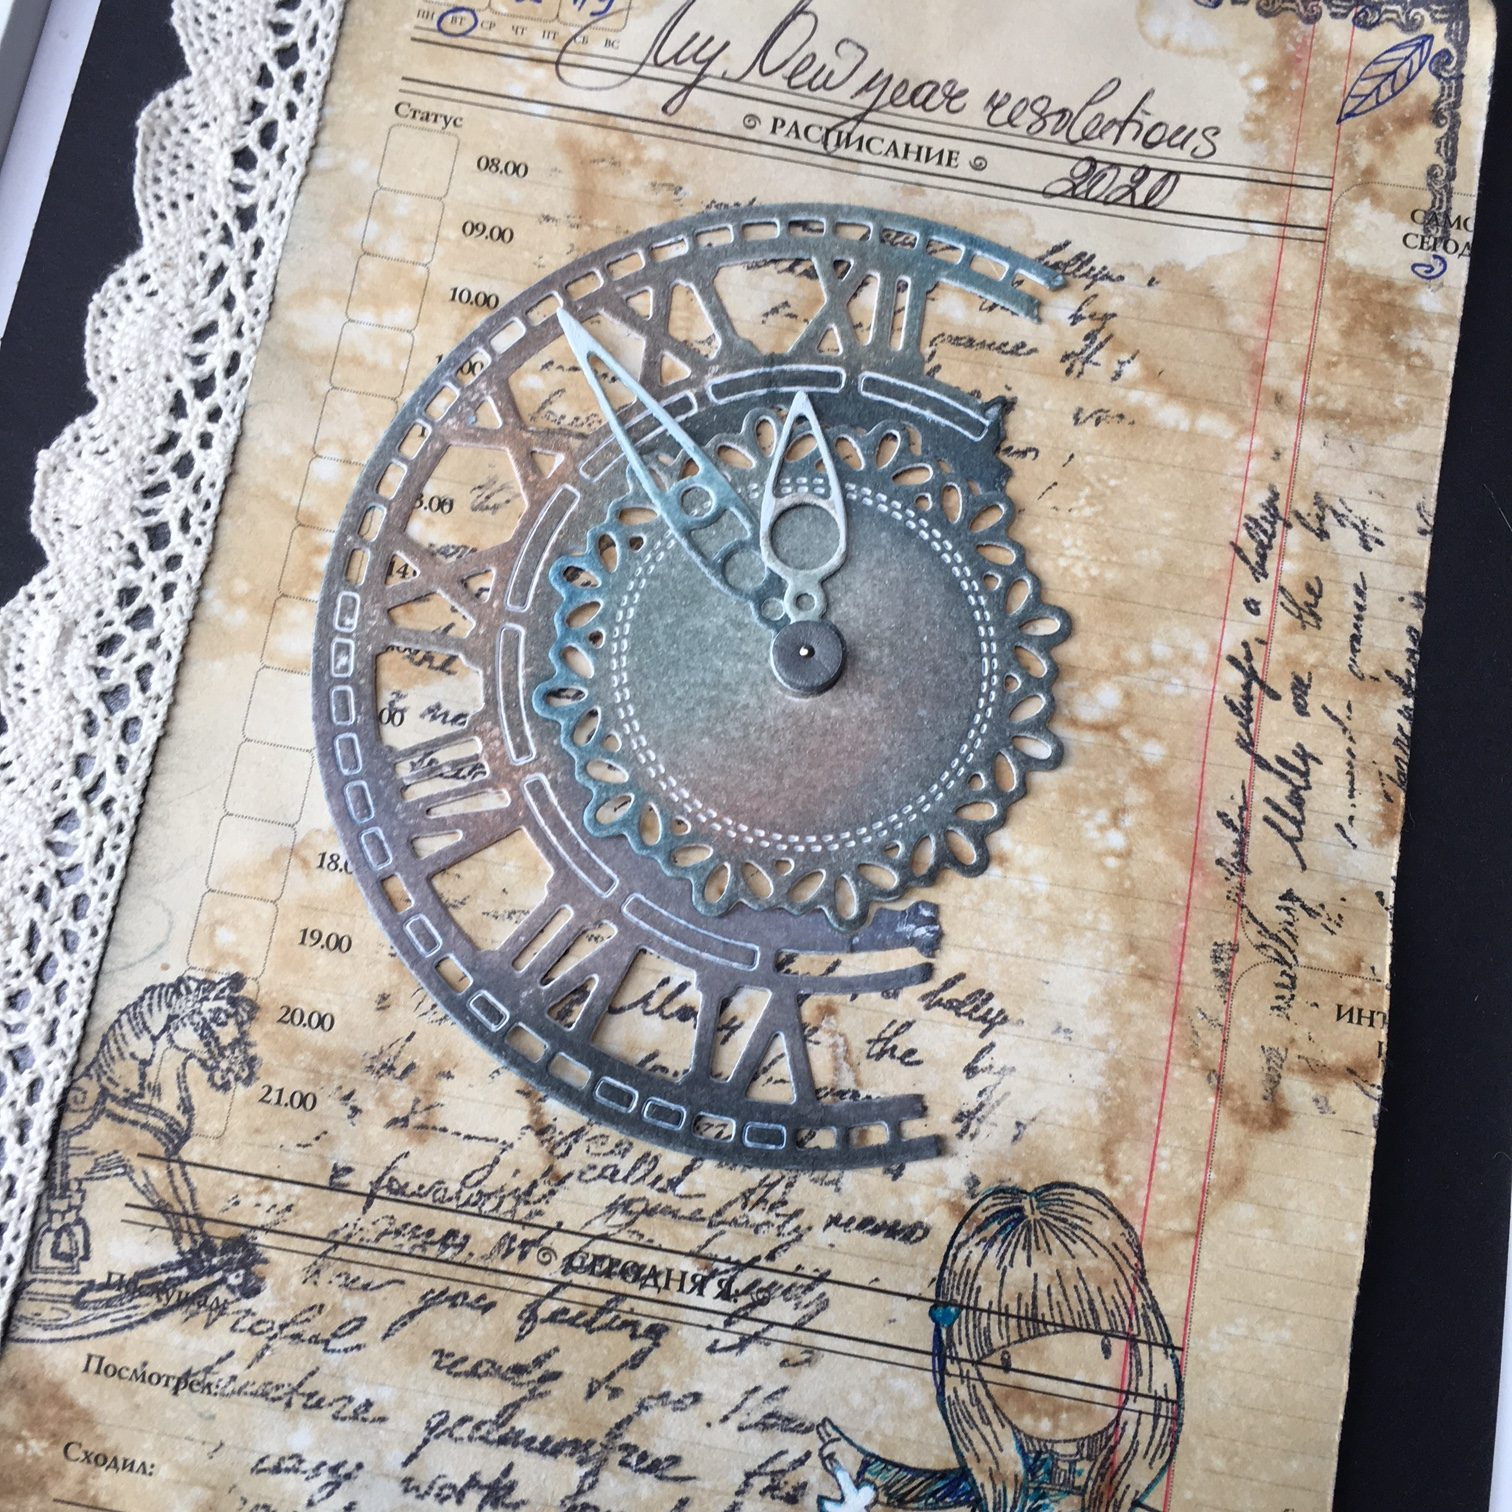 Scrapbook and lace project